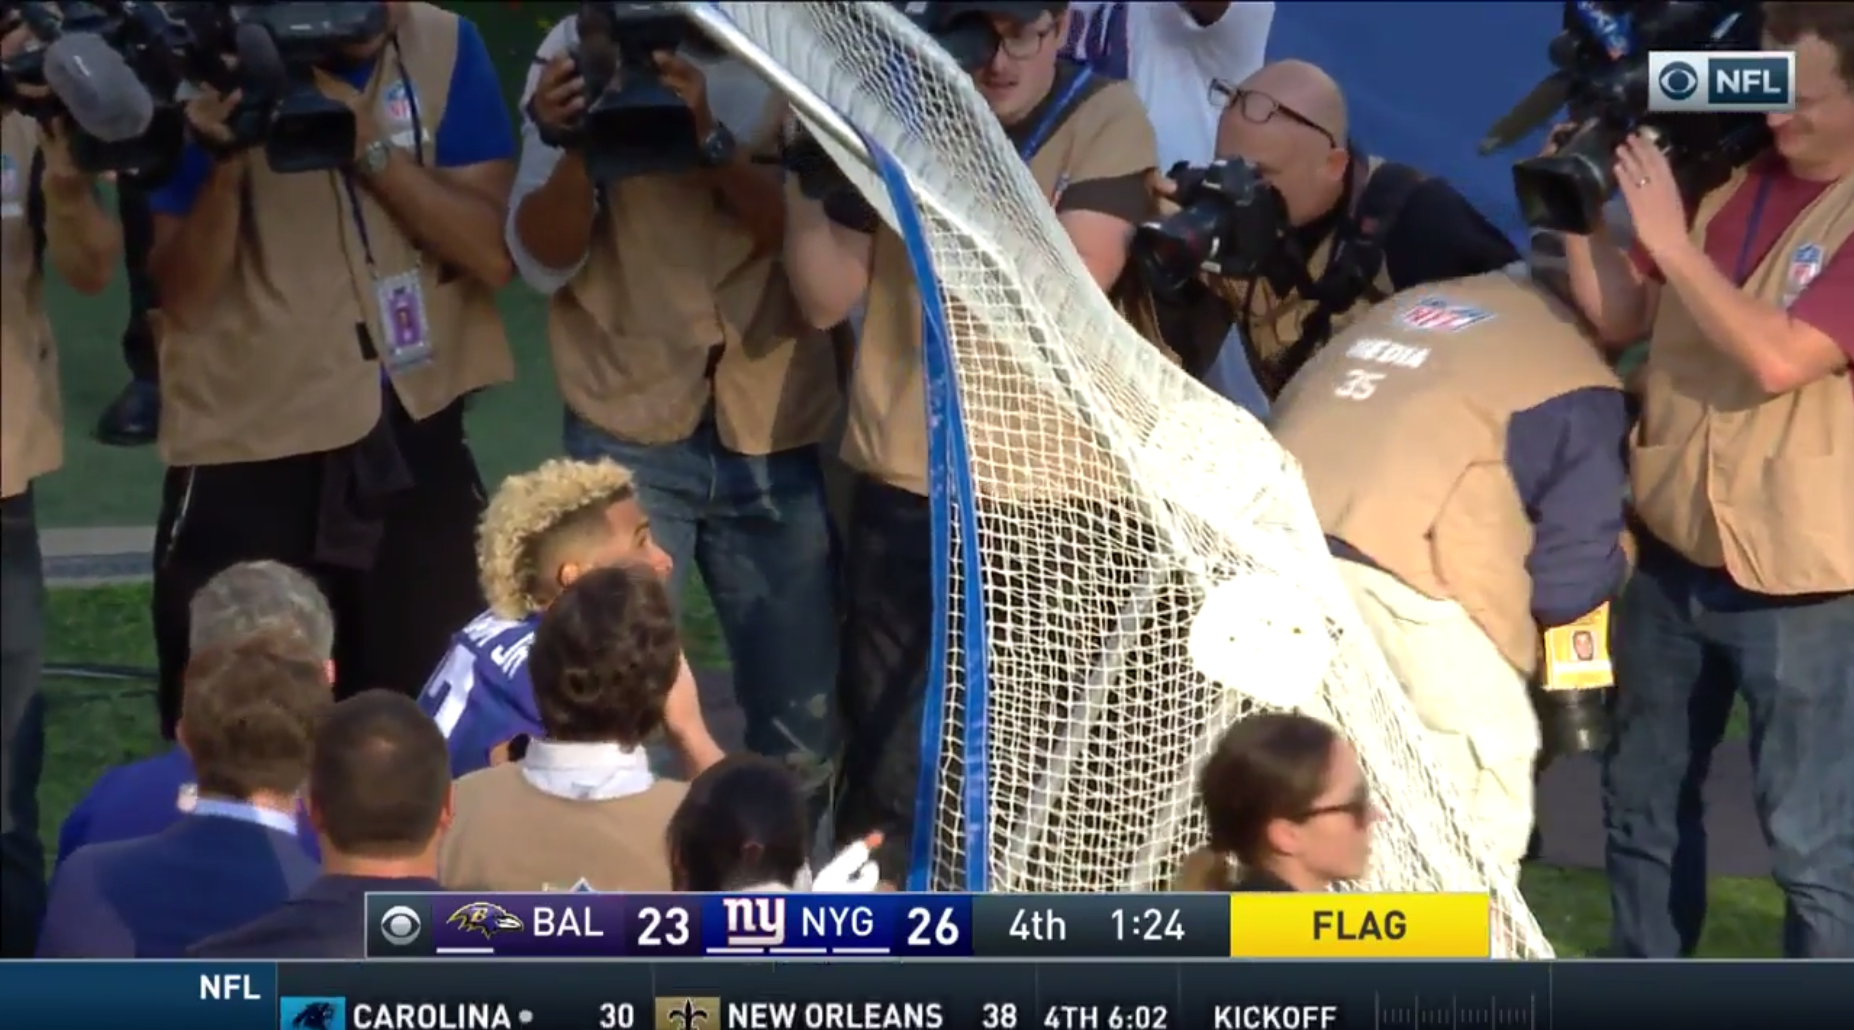 giants ravens odell beckham kicking net celebration video